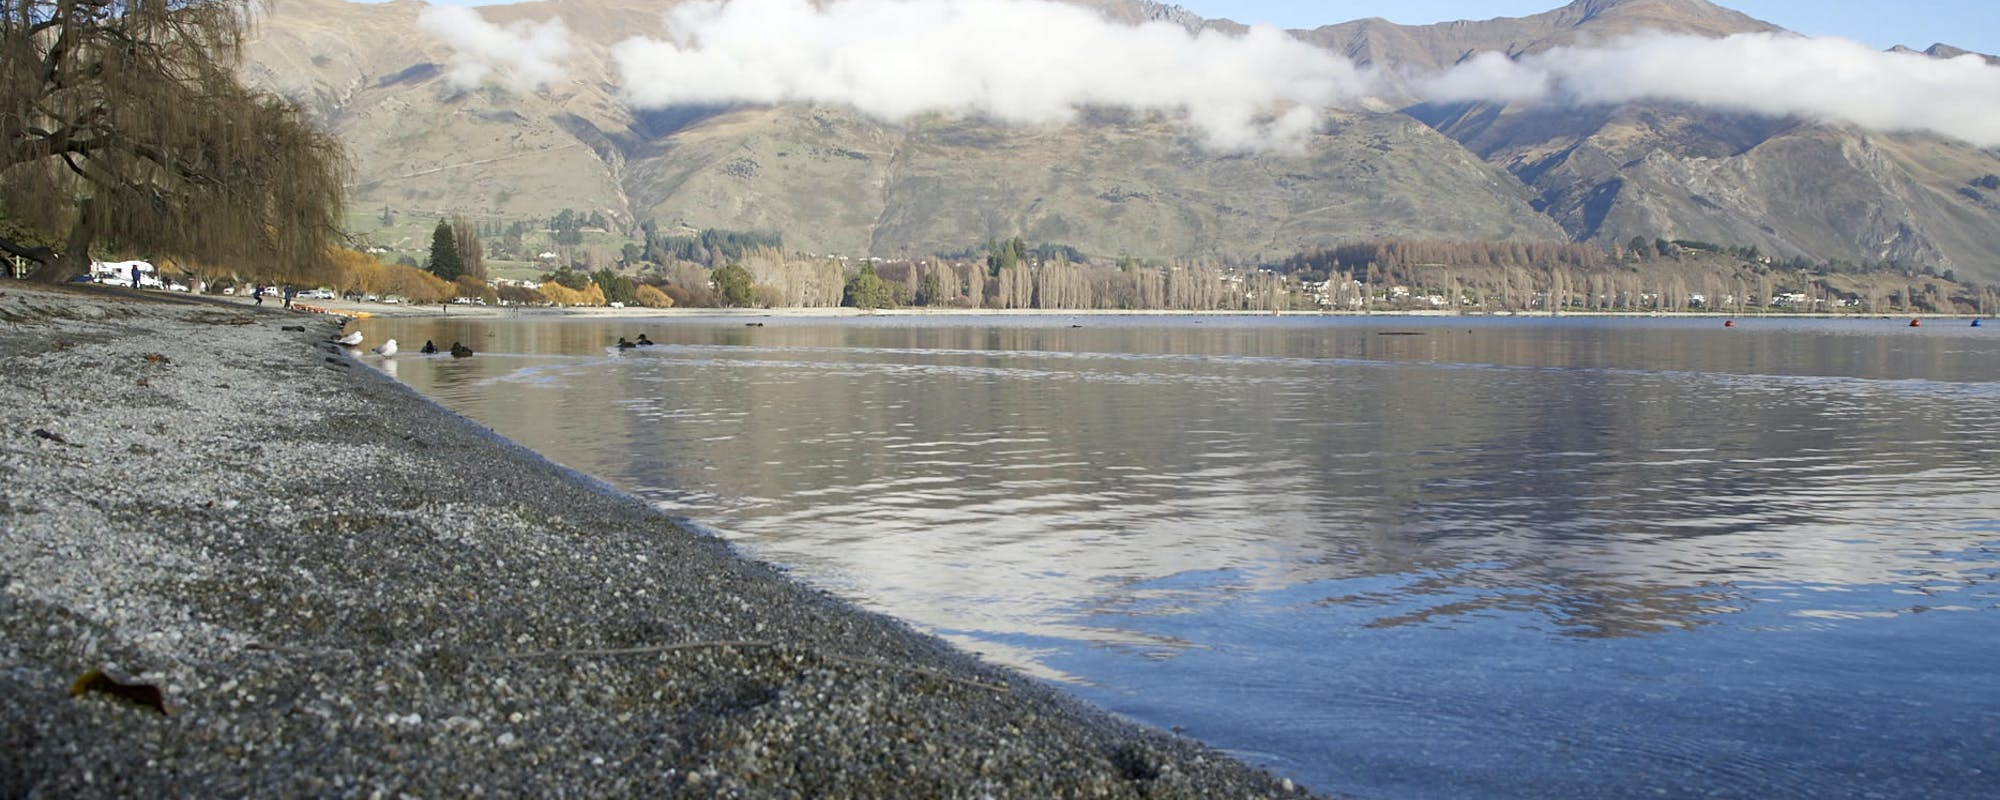 lake wanaka activities